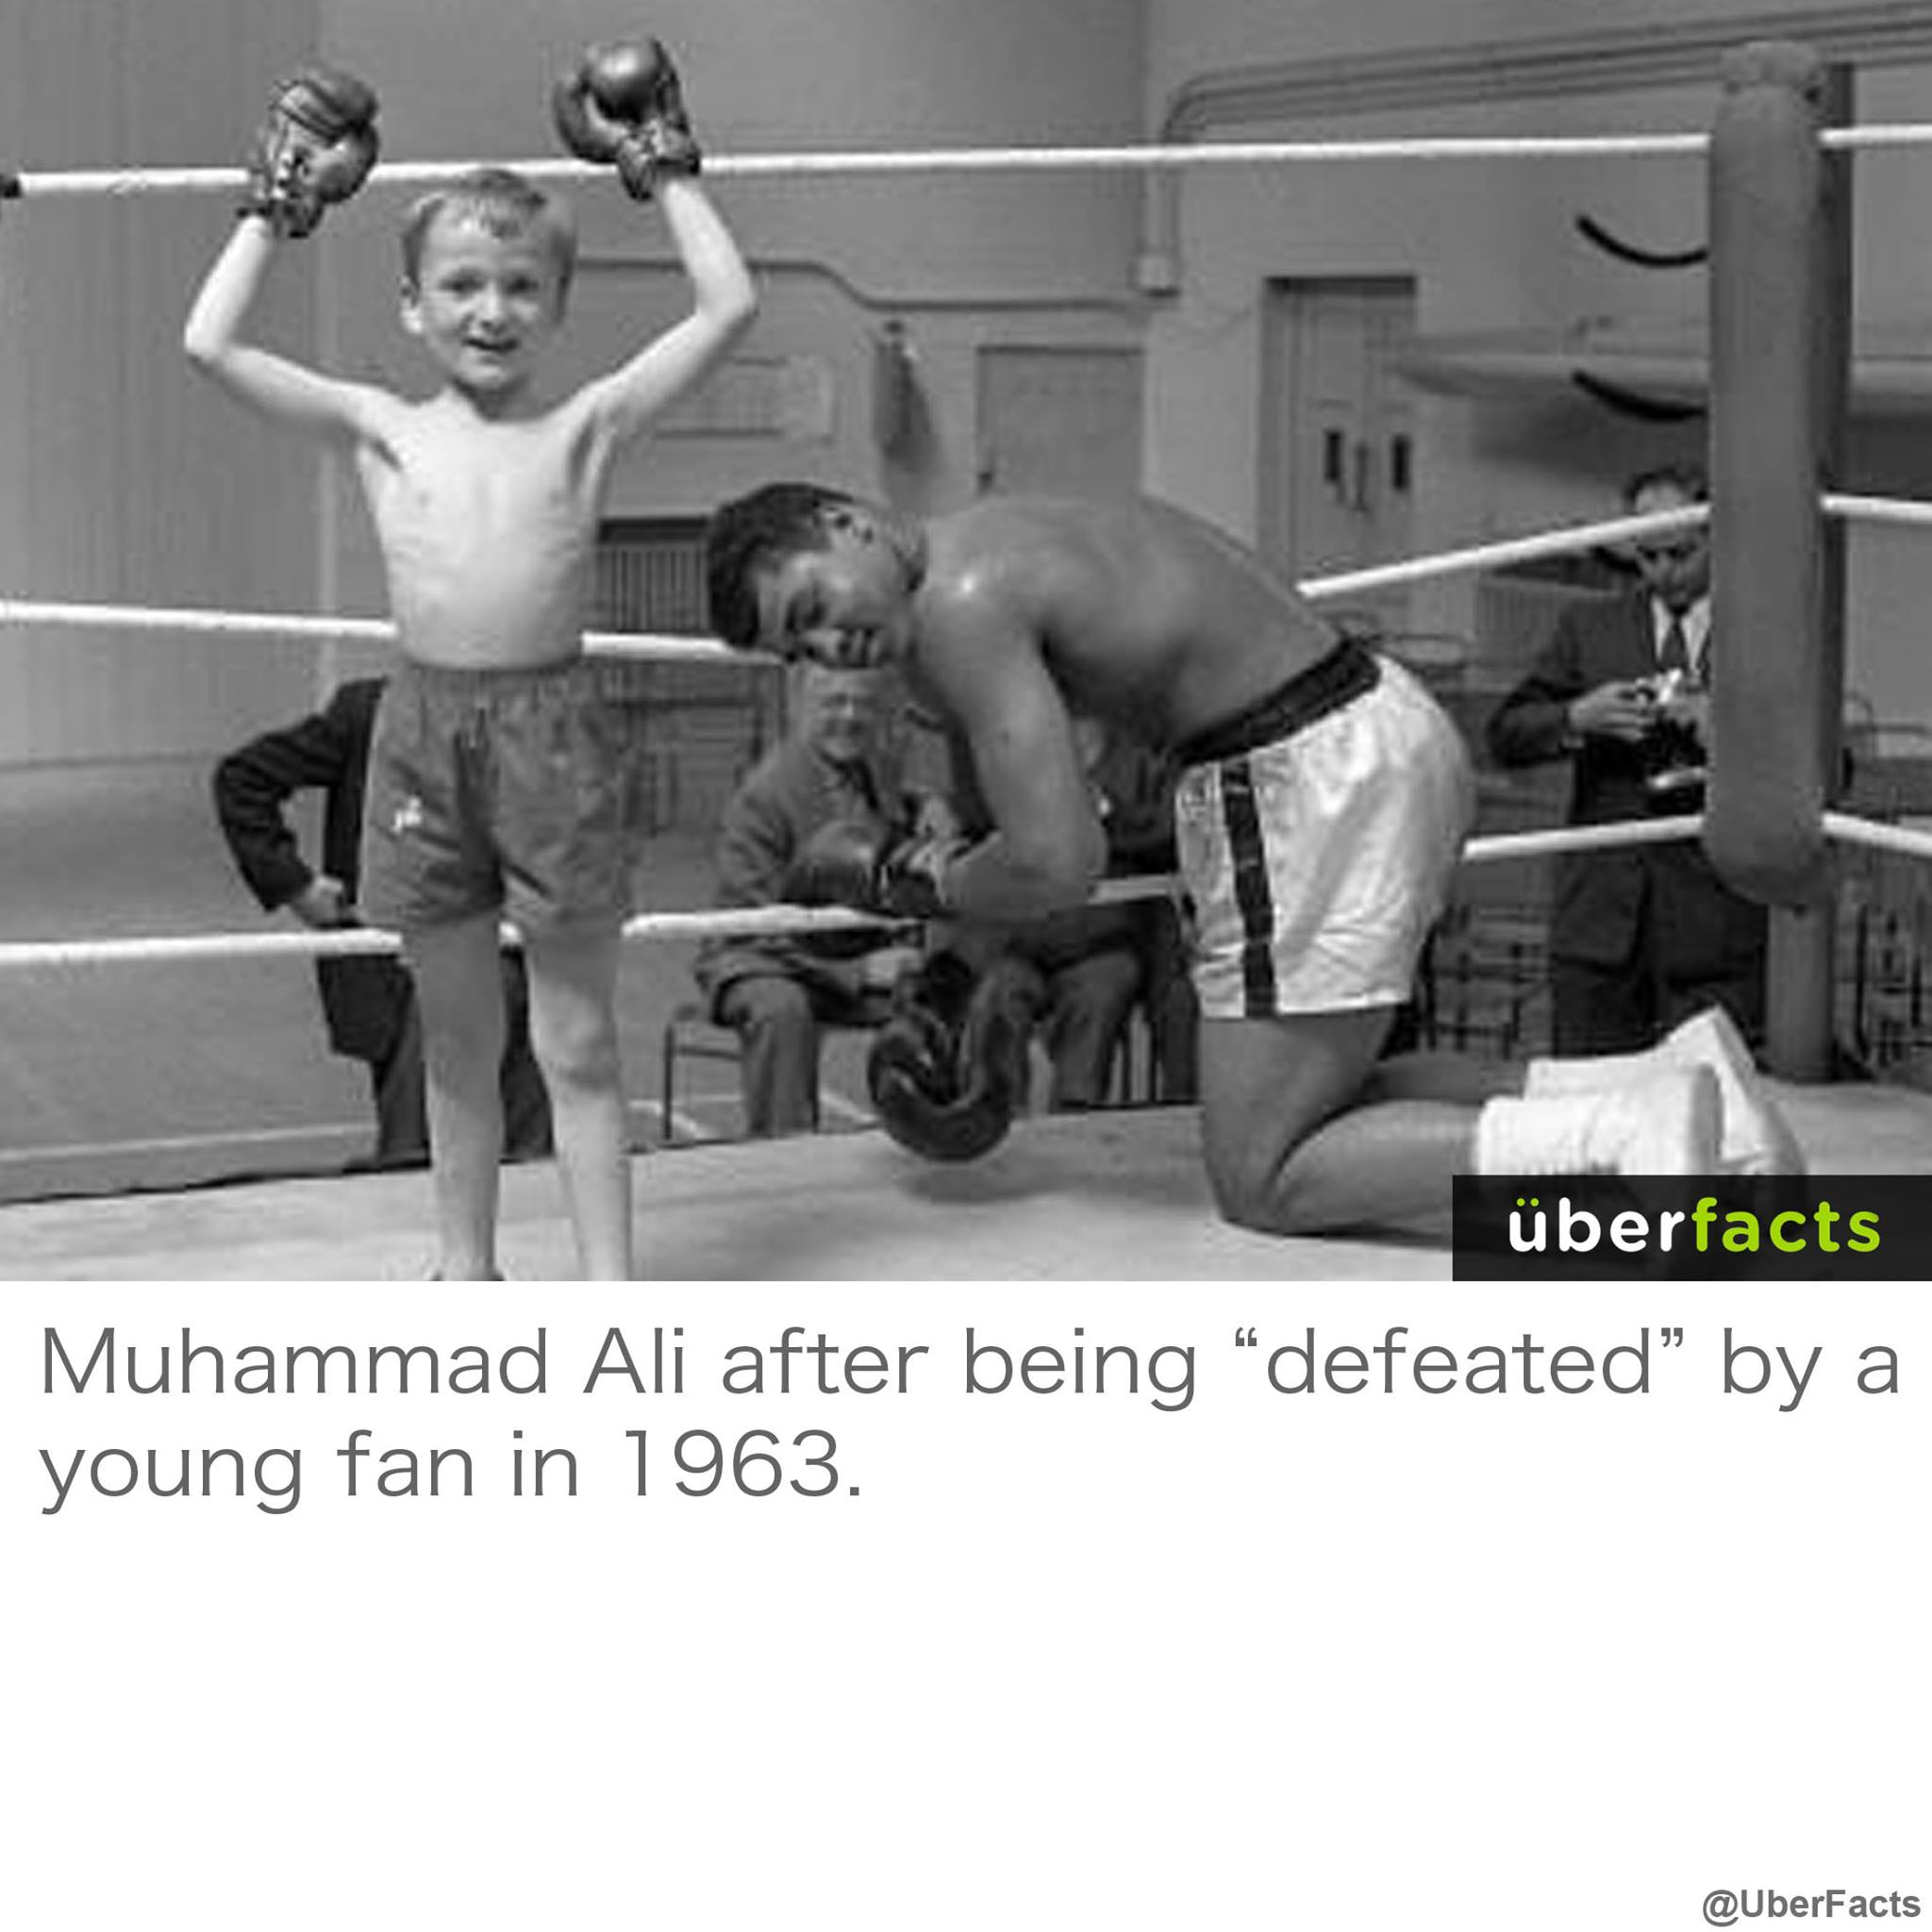 muhammad ali after being defeated by a young fan in 1963